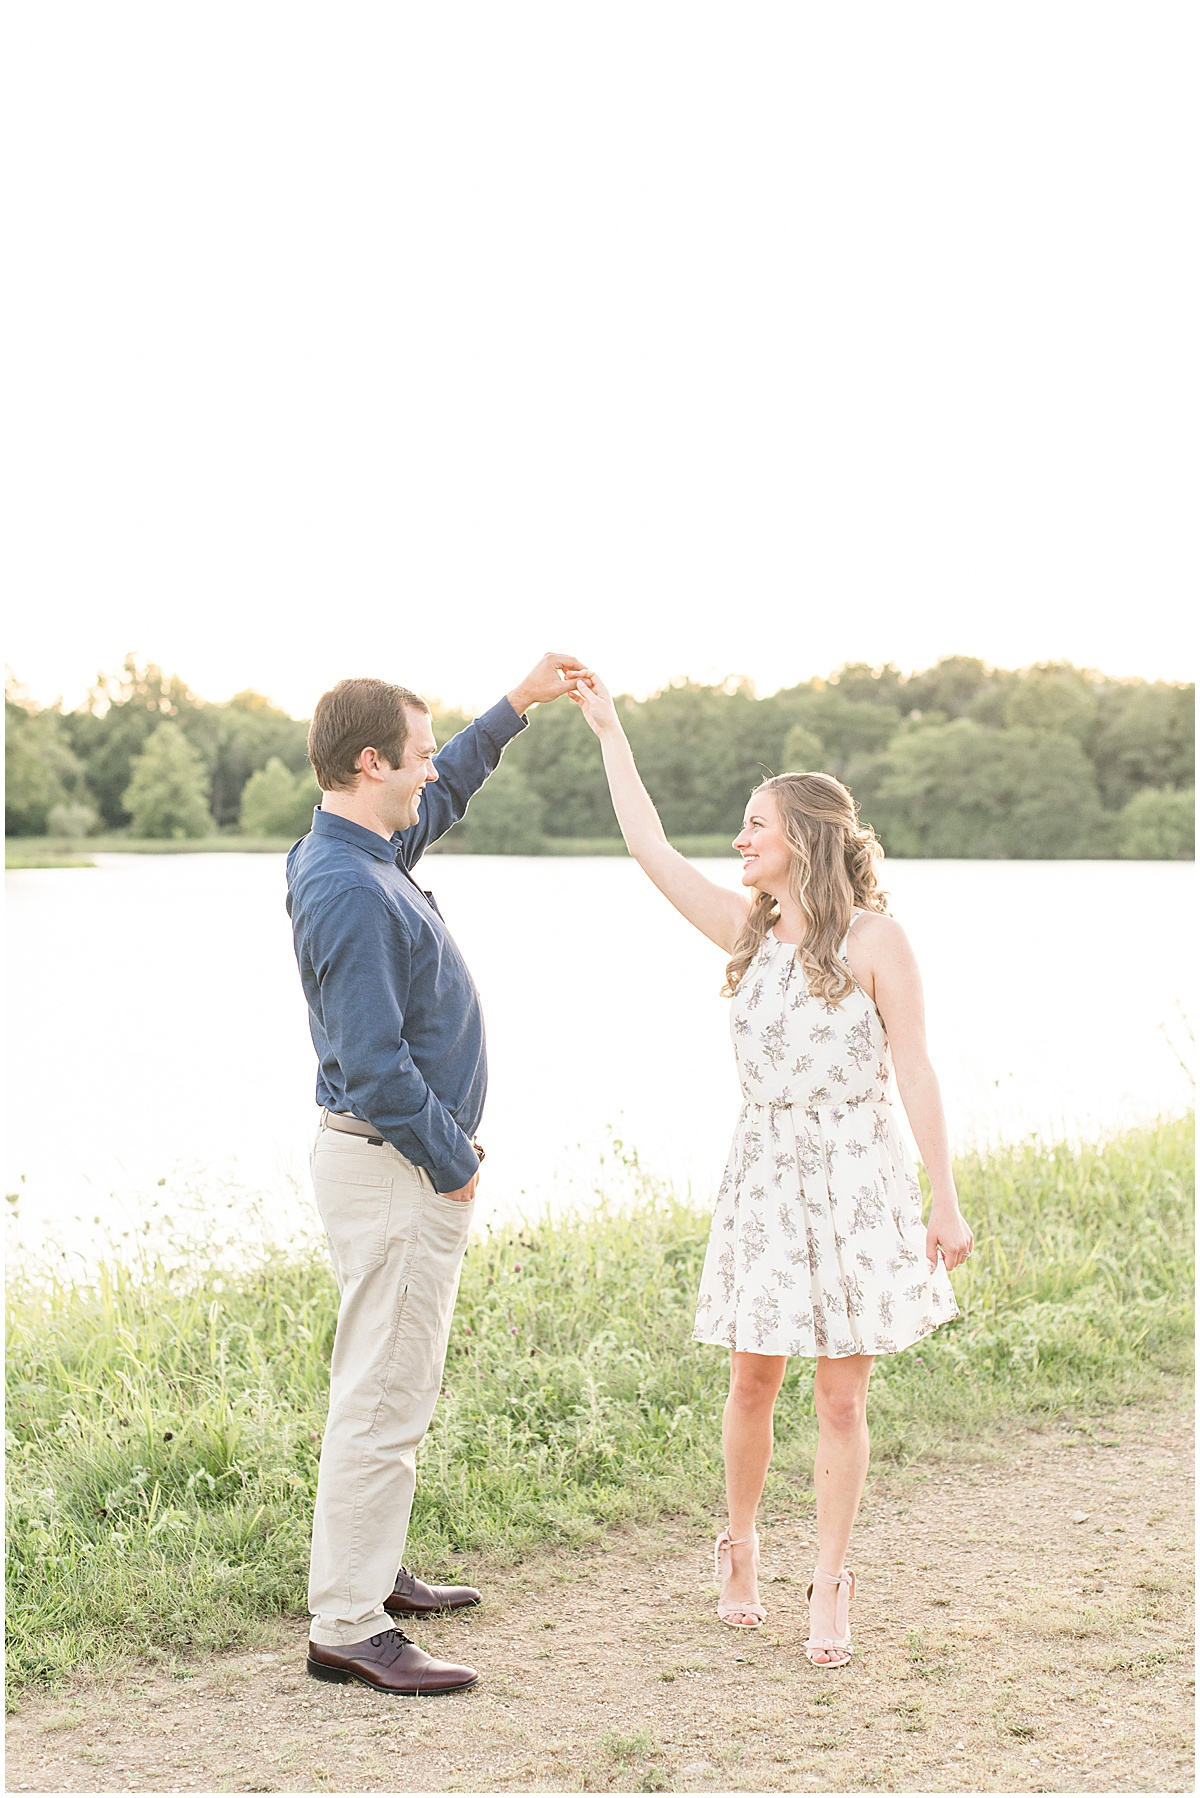 Dancing by the water during Lakefront engagement photos in Lafayette, Indiana